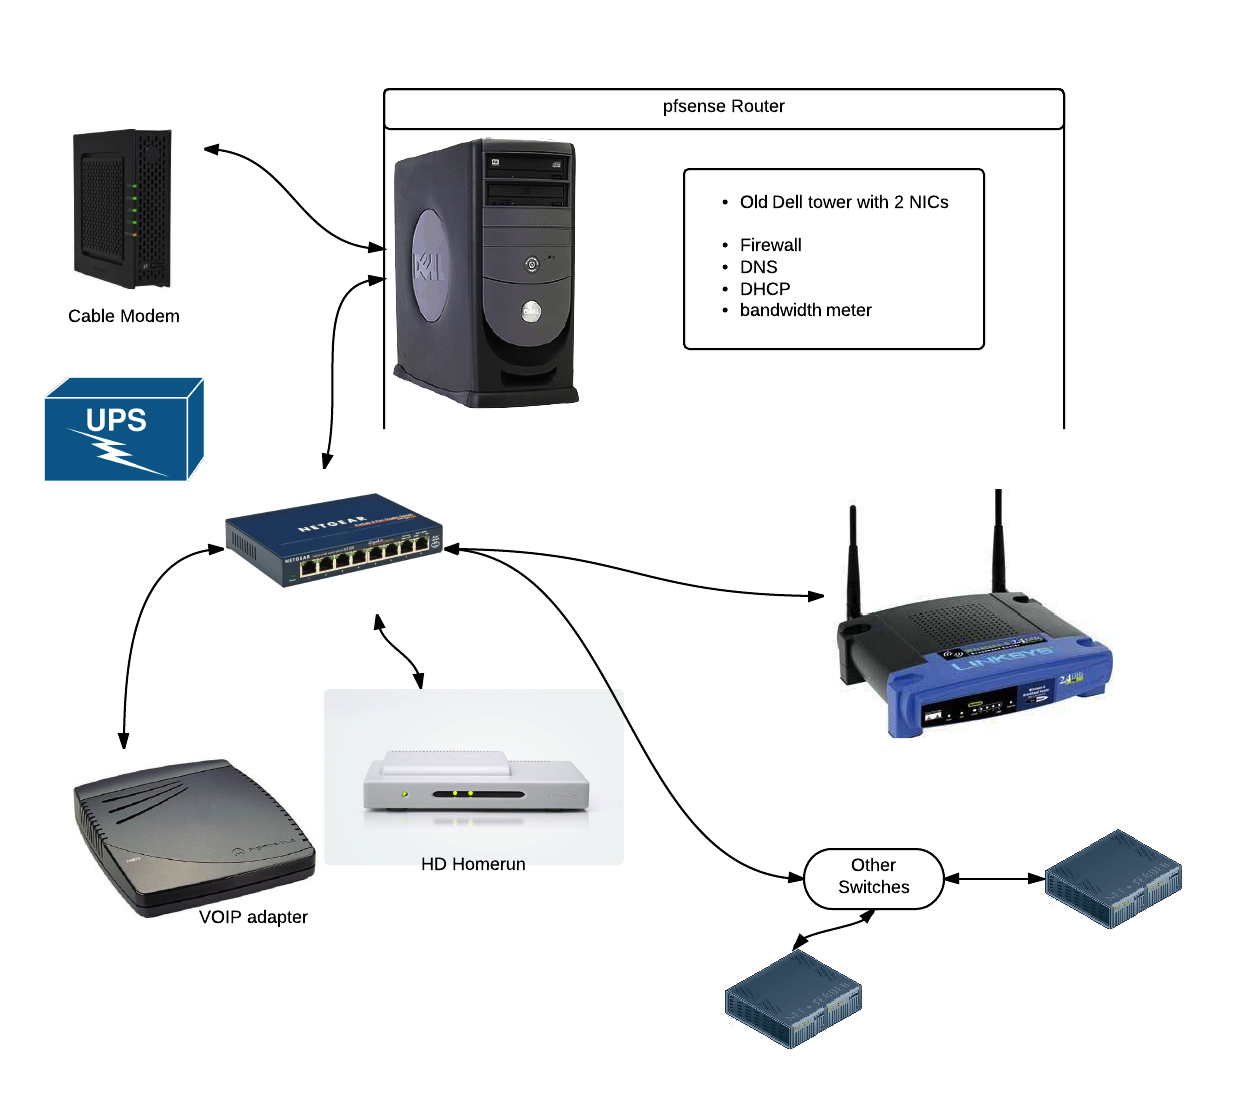 Home Networking, pfSense, Motorola Cable Modems, D-Link Routers and ...